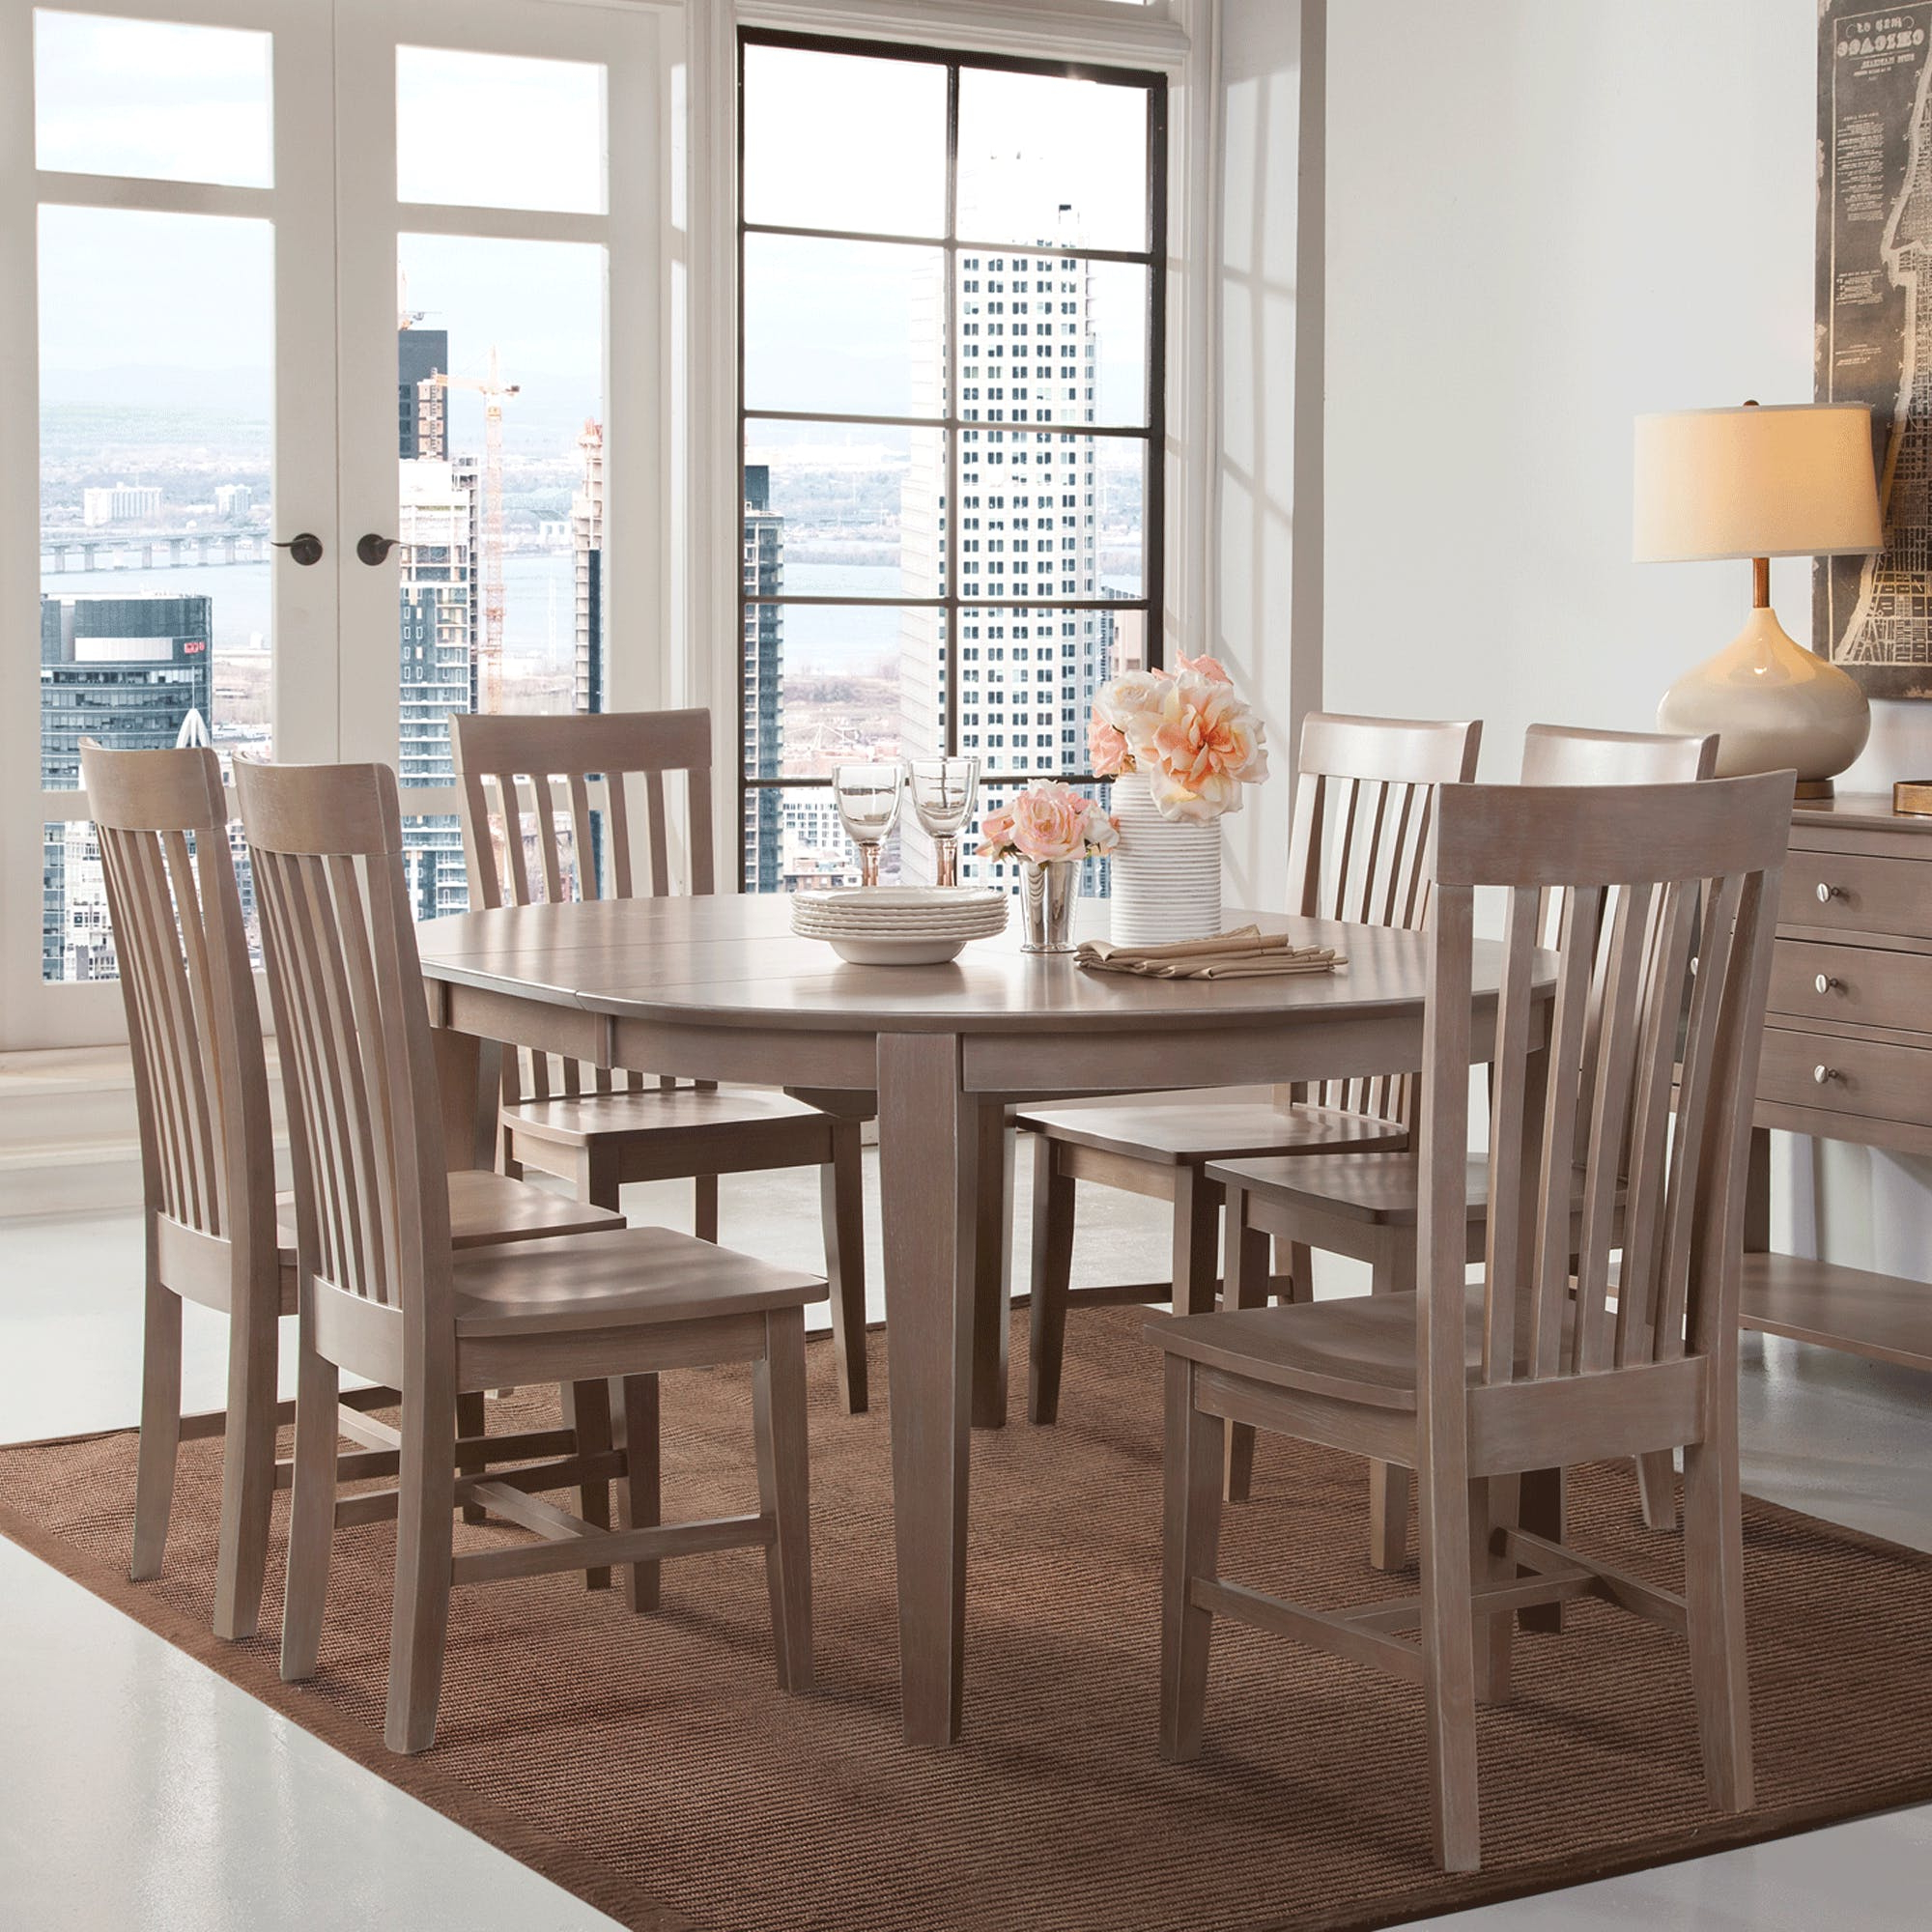 Cosmopolitan Weathered Grey Dining Room 5 Piece Set – Oval Table For Most Popular John 4 Piece Dining Sets (View 2 of 20)